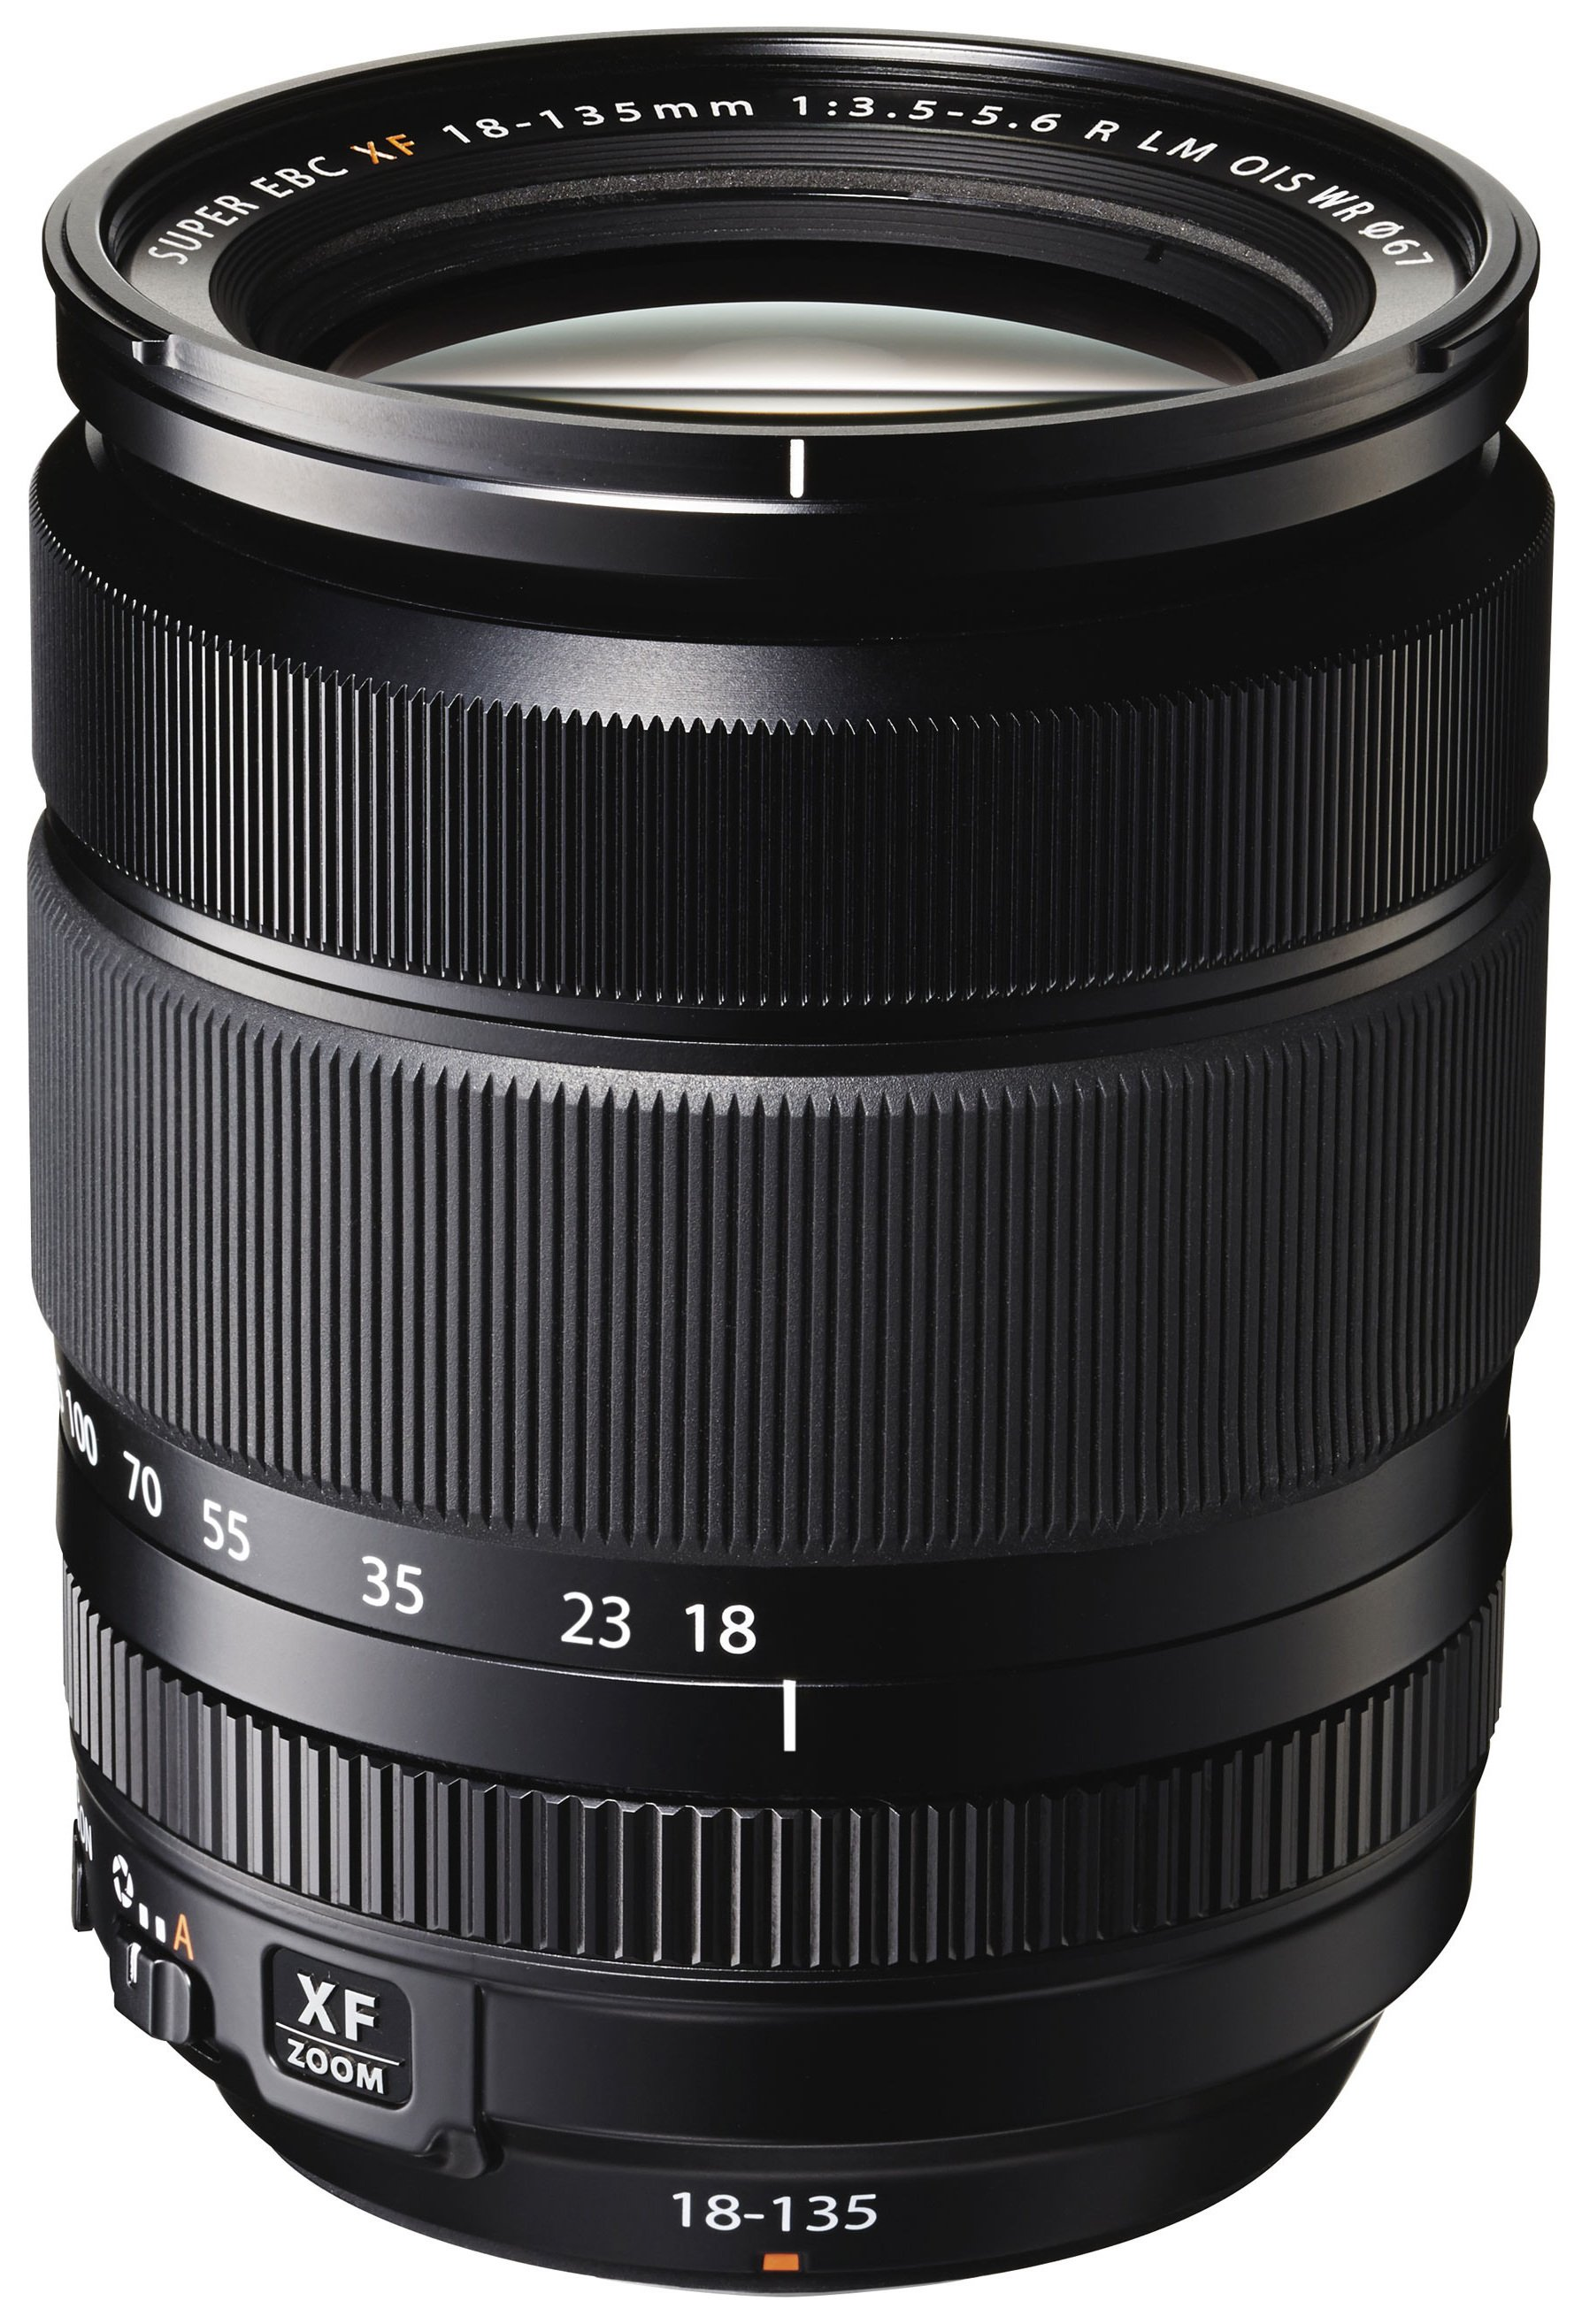 Image of Fujifilm 18-135mm XF Lens.